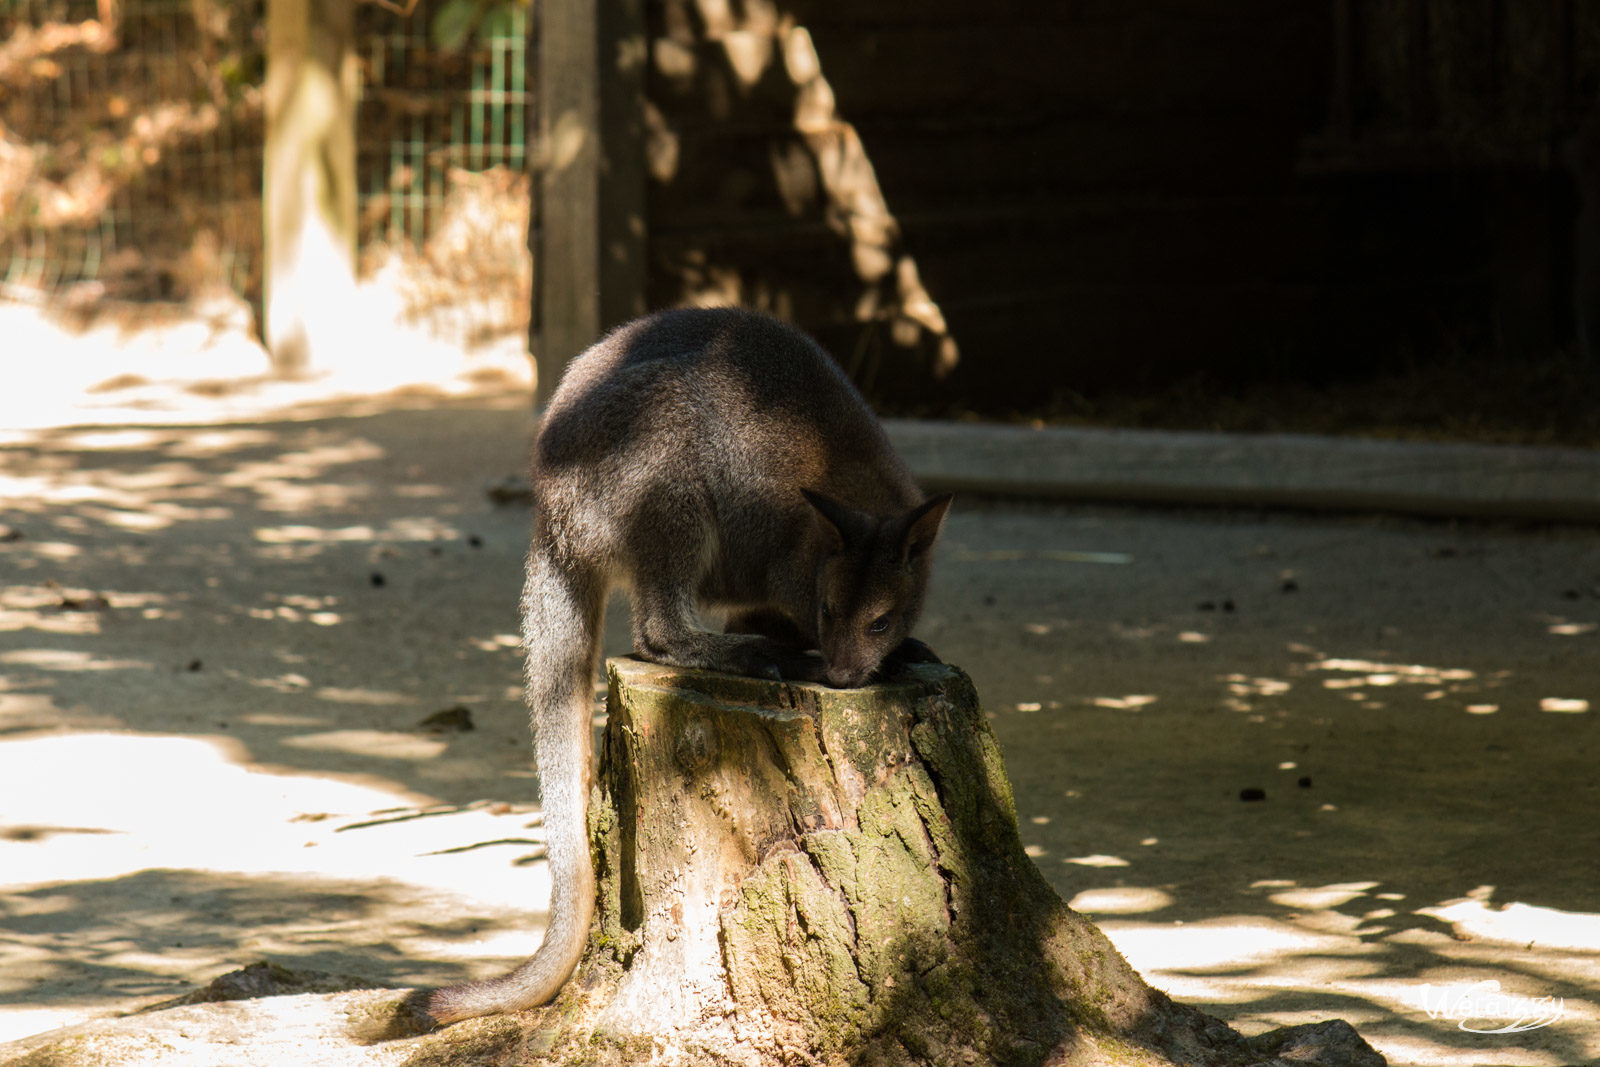 Animaux, France, Nantes, Nature, Zoo